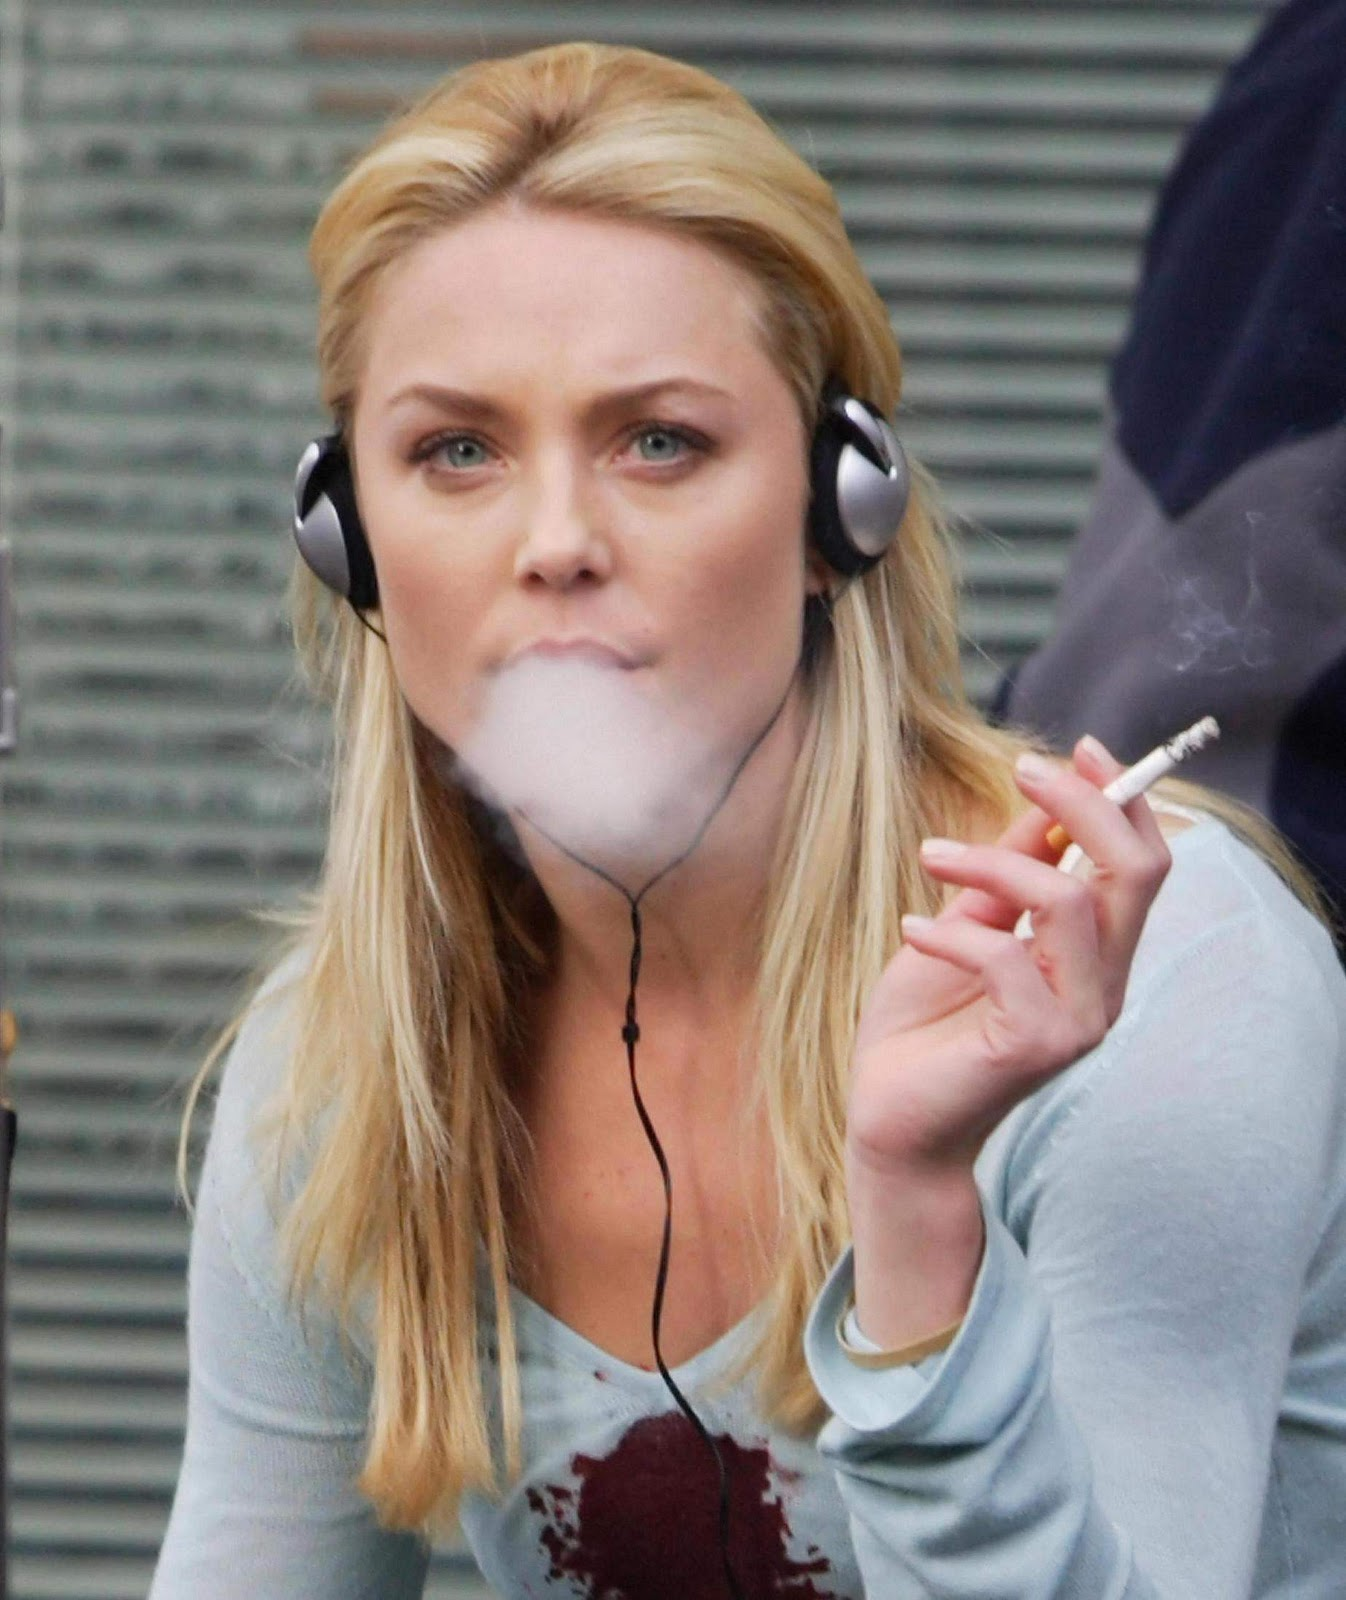 celebrity women smoking photos Pictures, Images & Photos ...